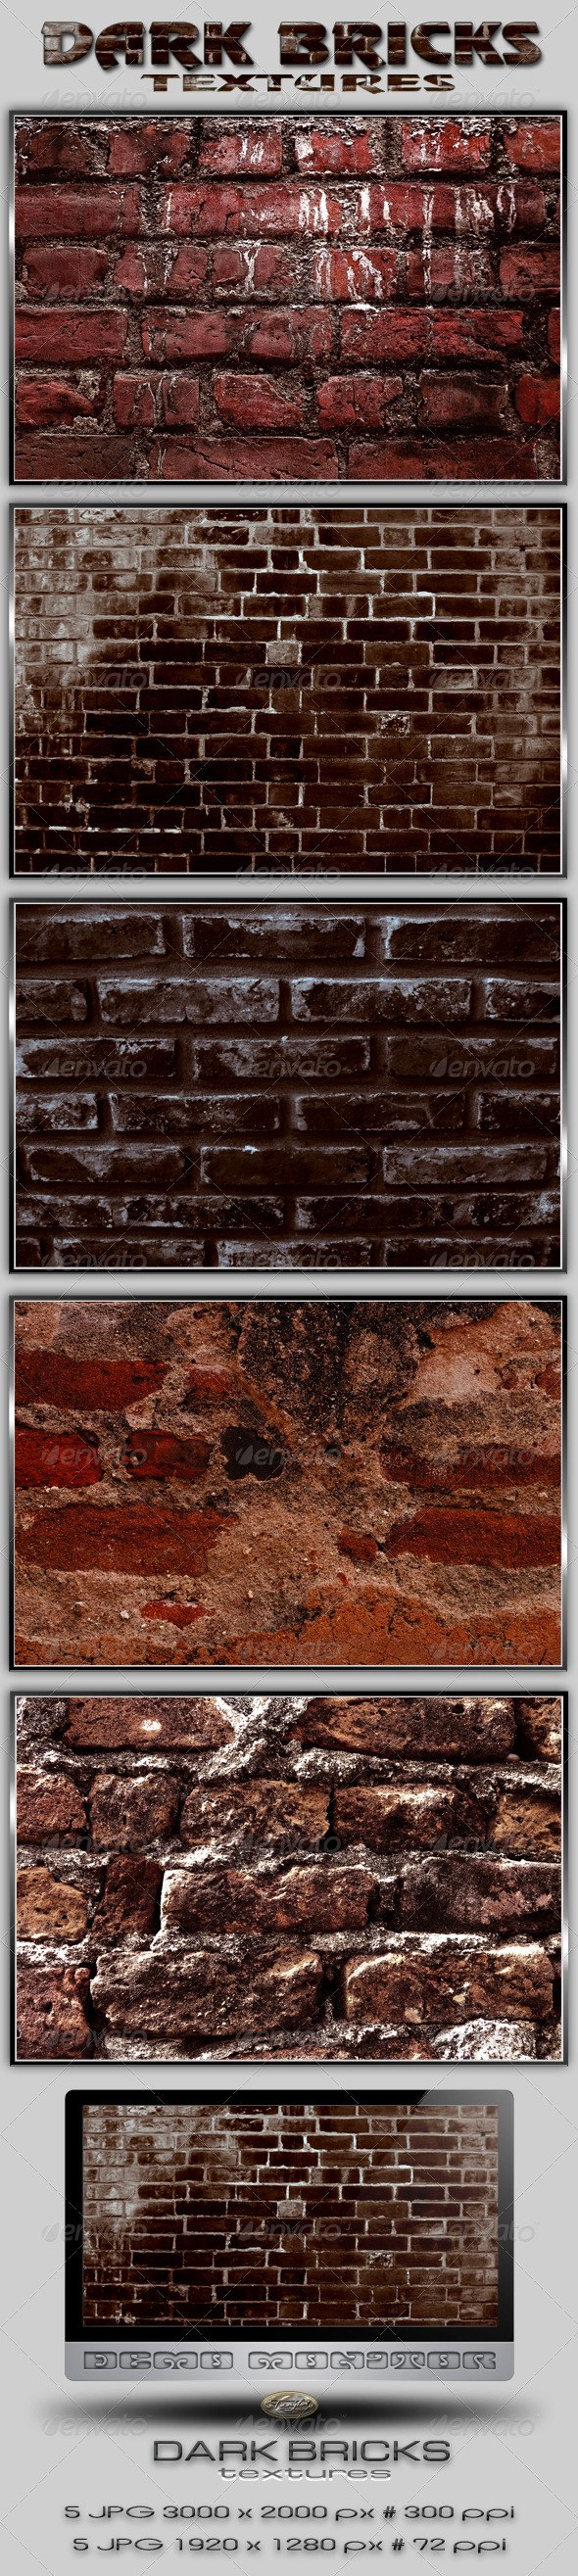 Dark Old Bricks Textures GraphicRiver - Textures -  Industrial / Grunge 2376089